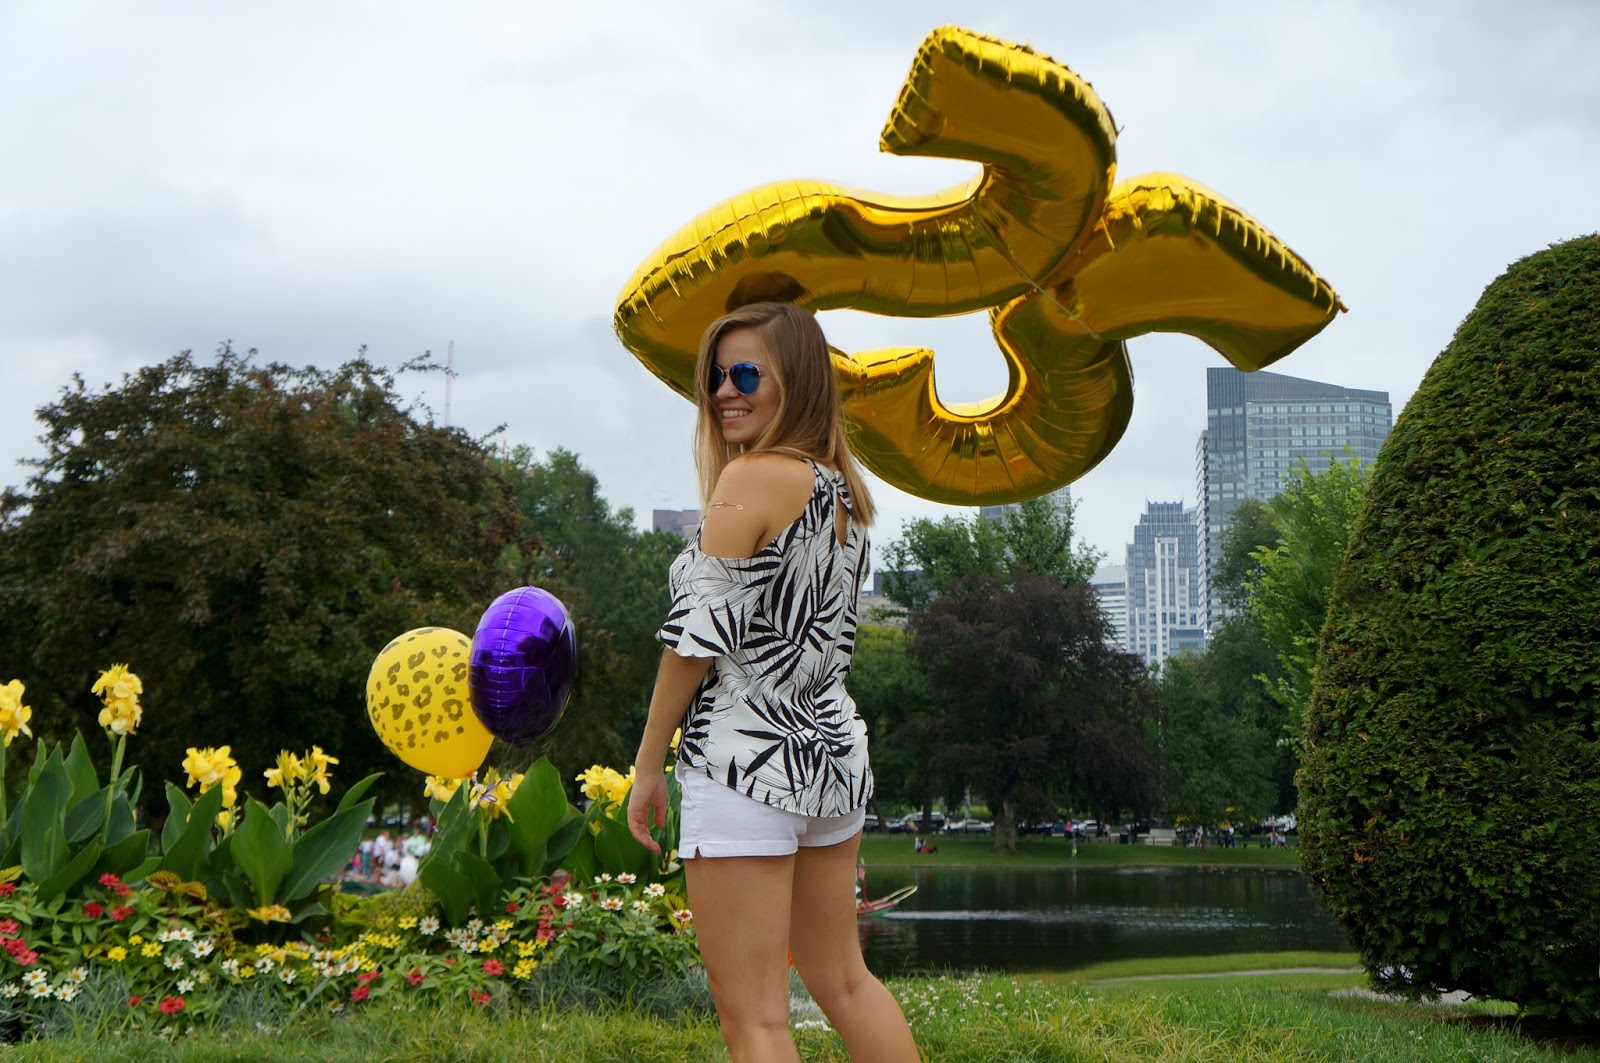 25th birthday photo shoot in Boston